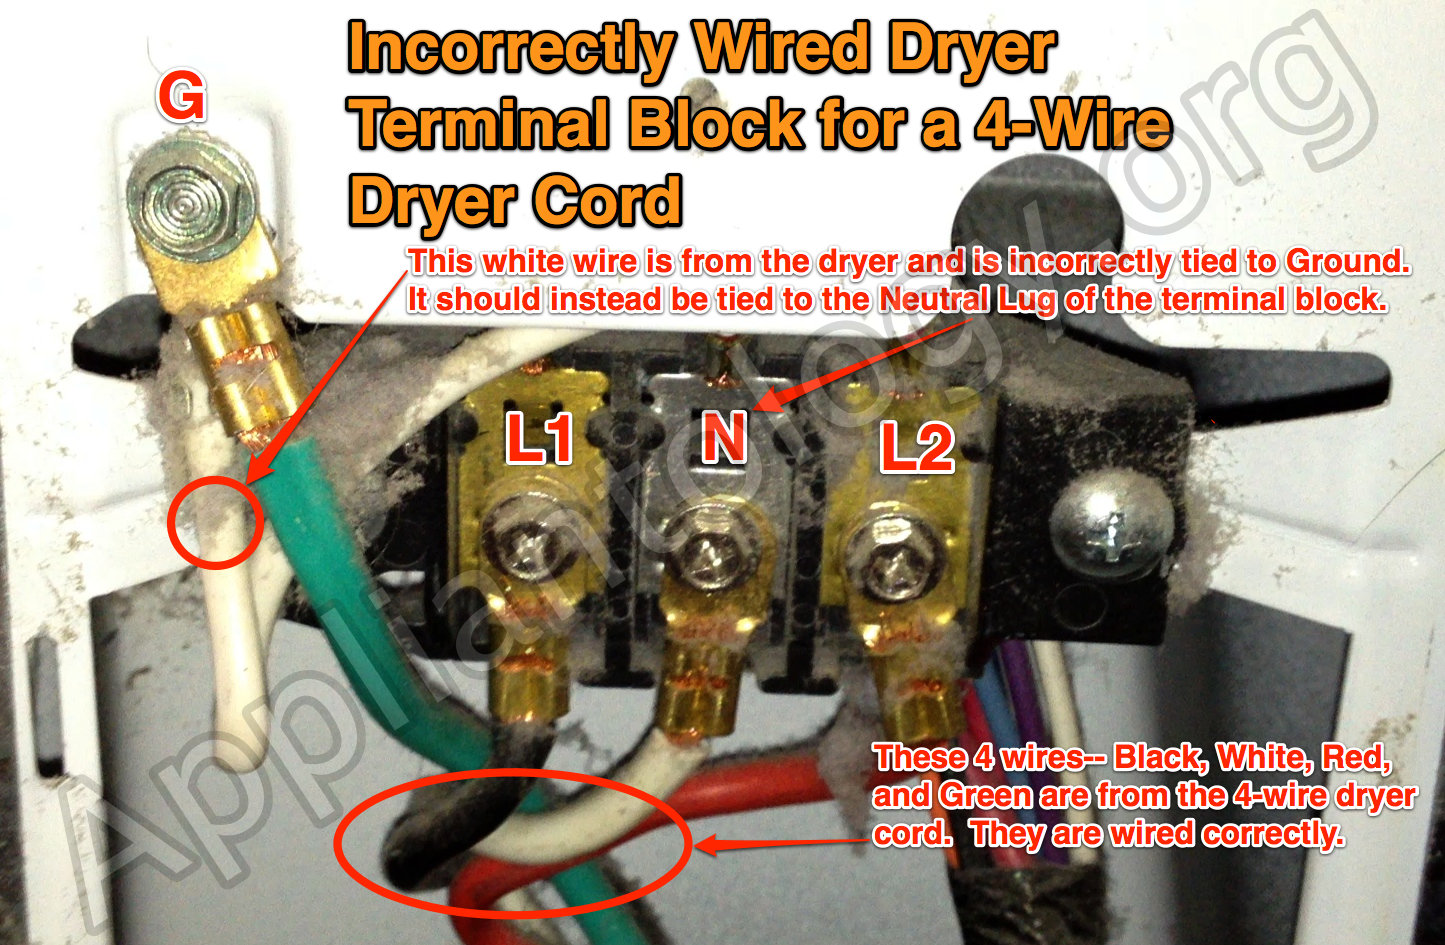 4 Wire Dryer Diagram - wiring diagram on the net  Wire Cord Diagram on